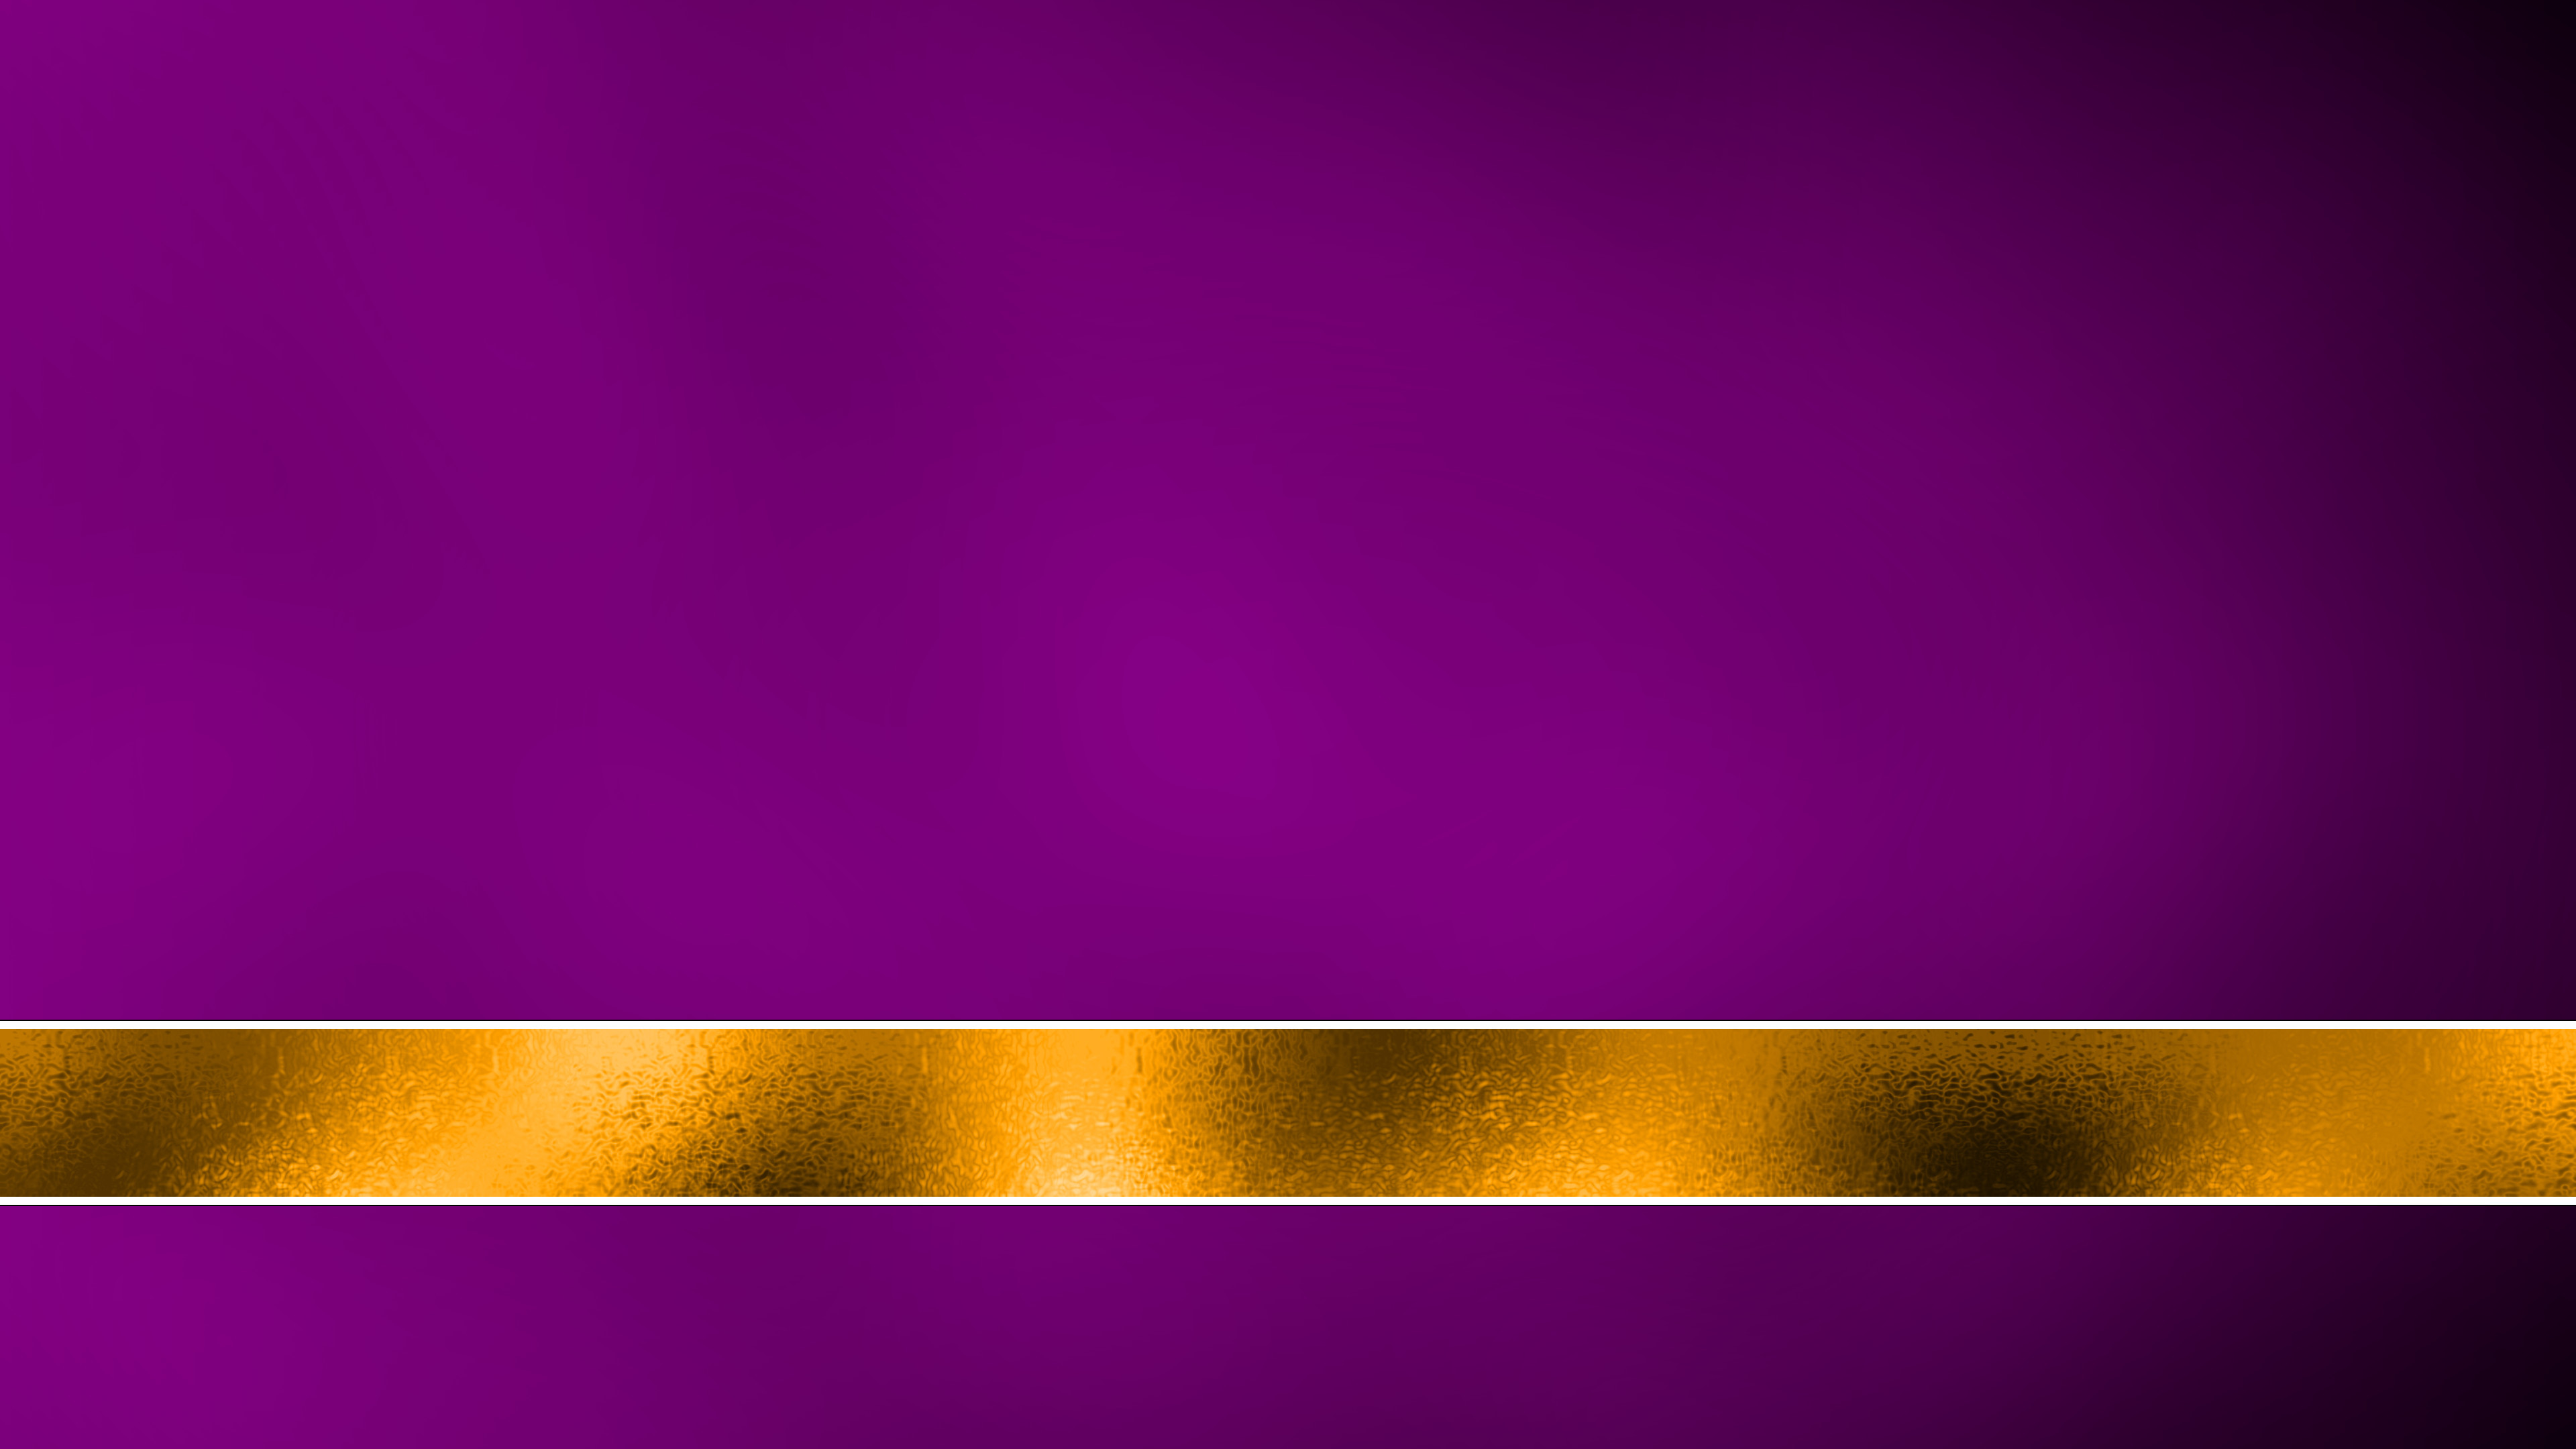 Purple and Gold Wallpapers ·① WallpaperTag